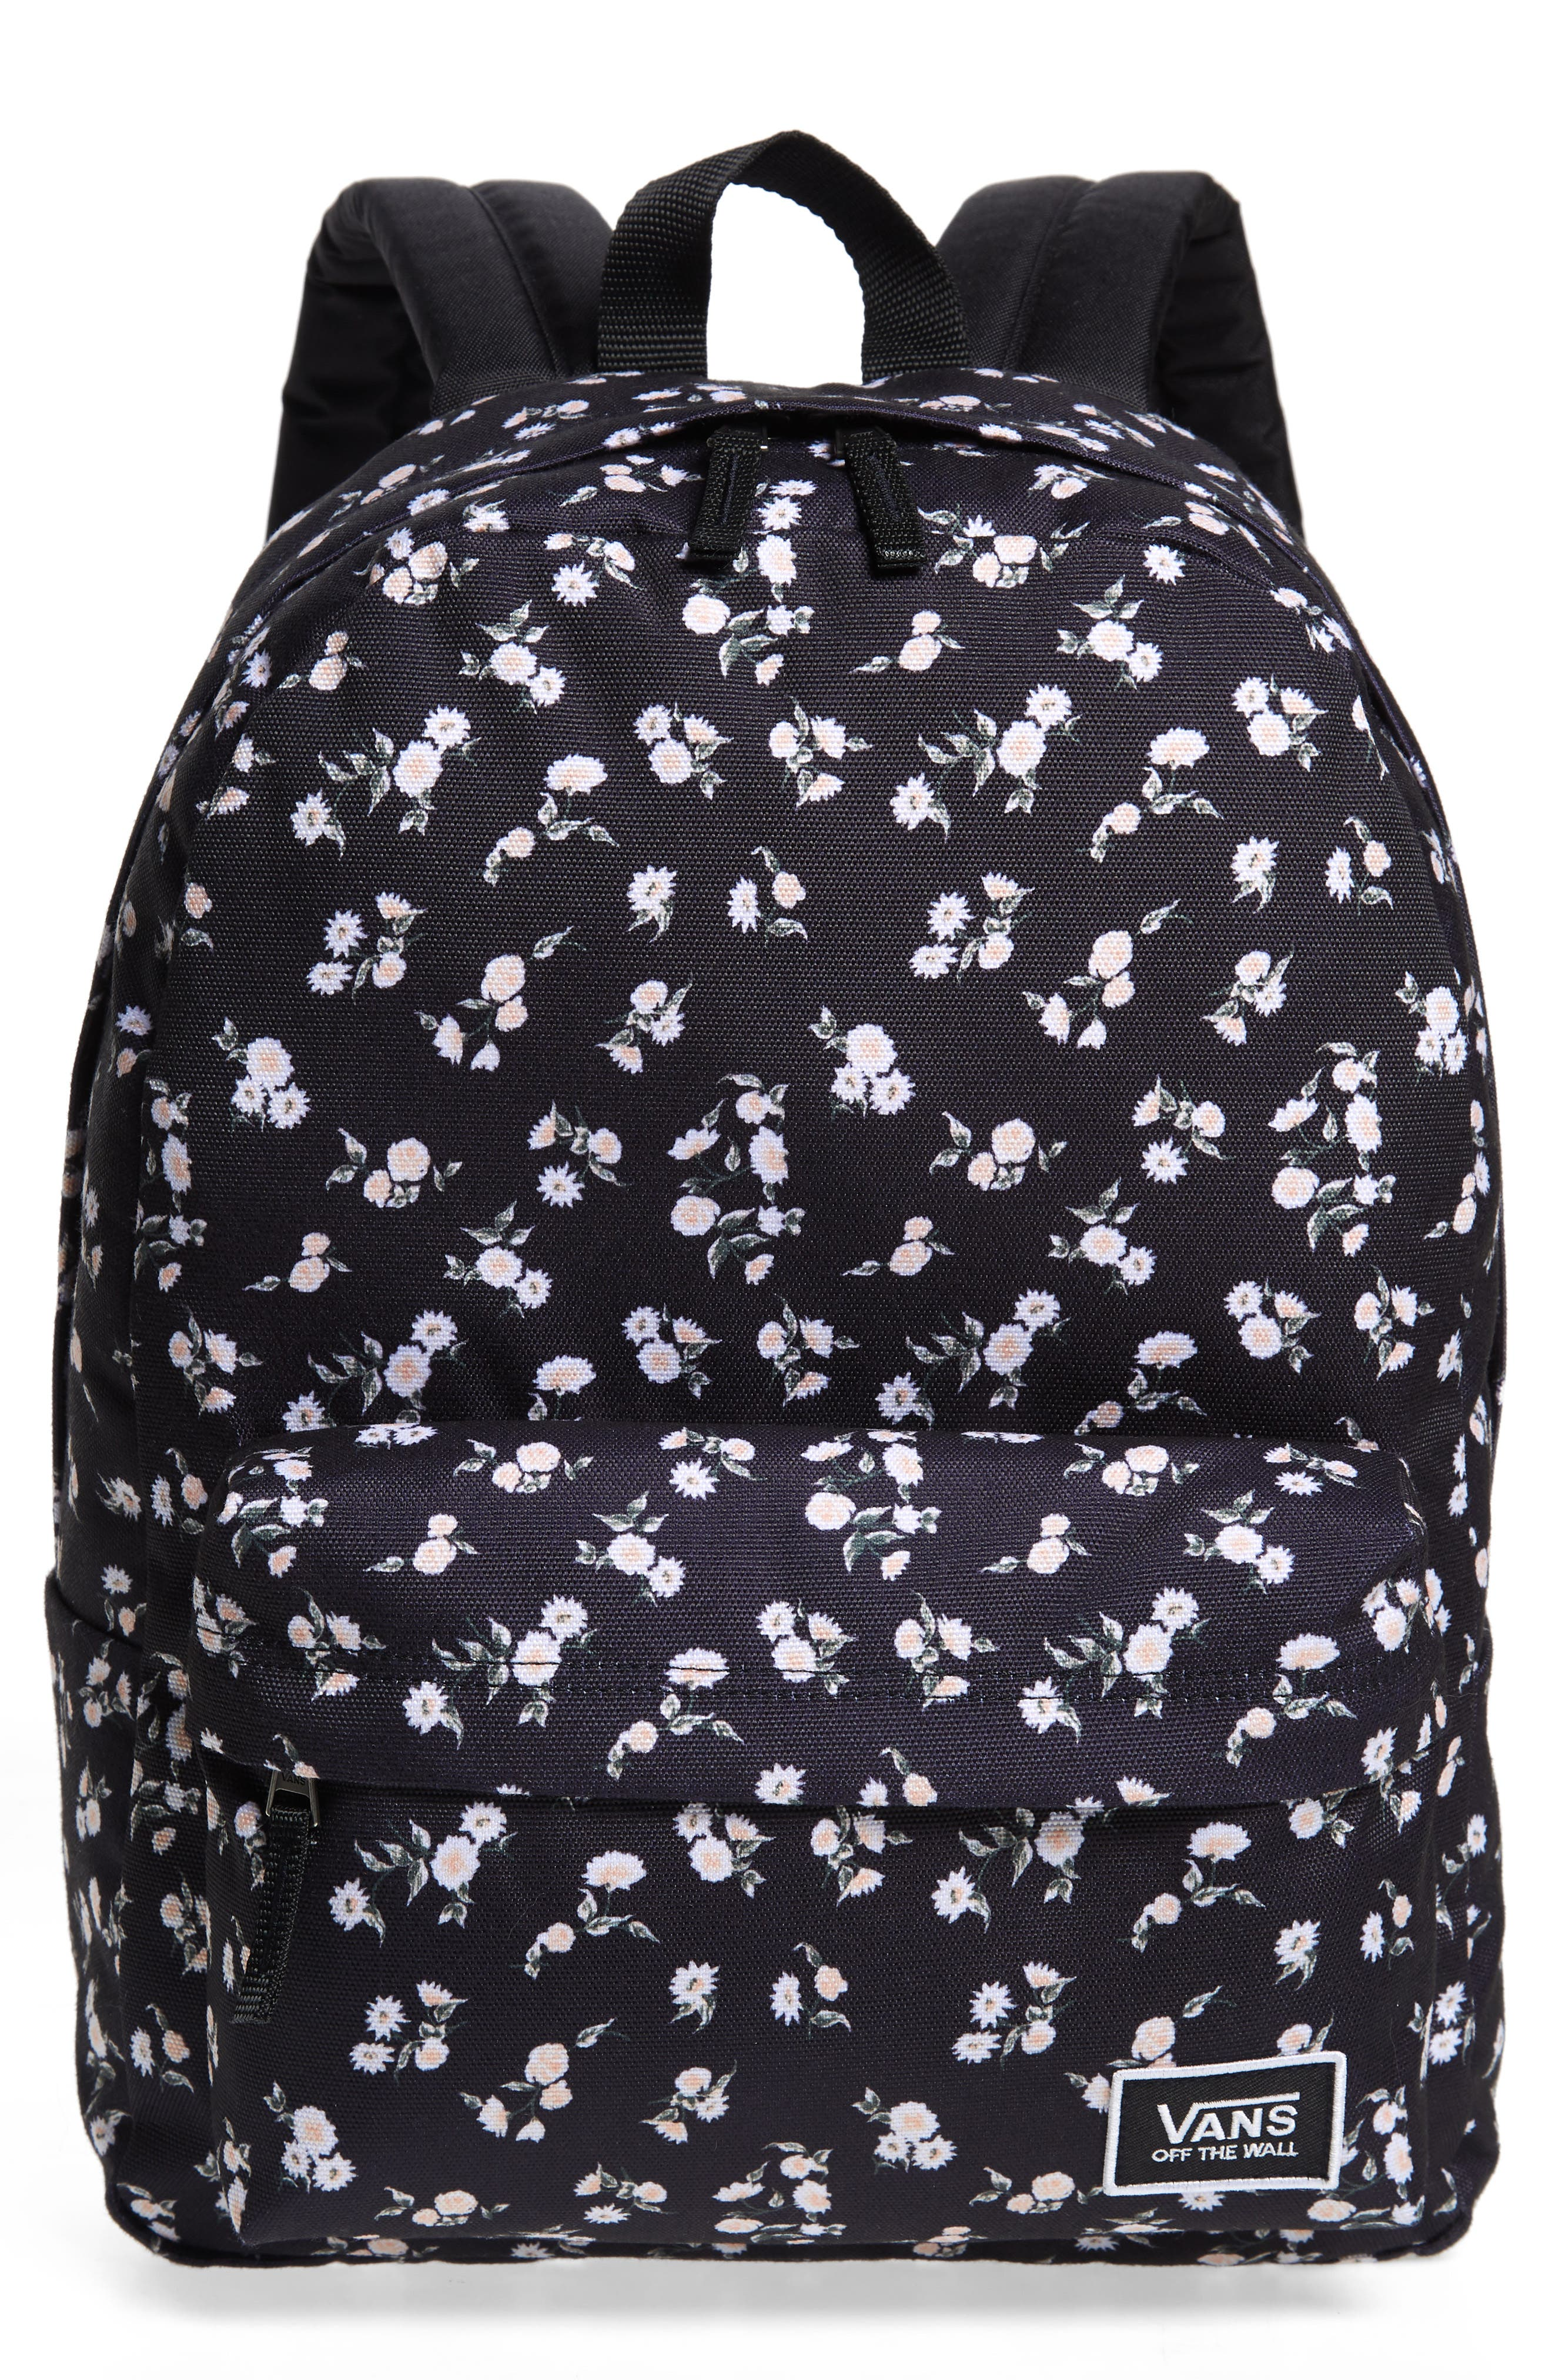 vans off the wall backpack pink